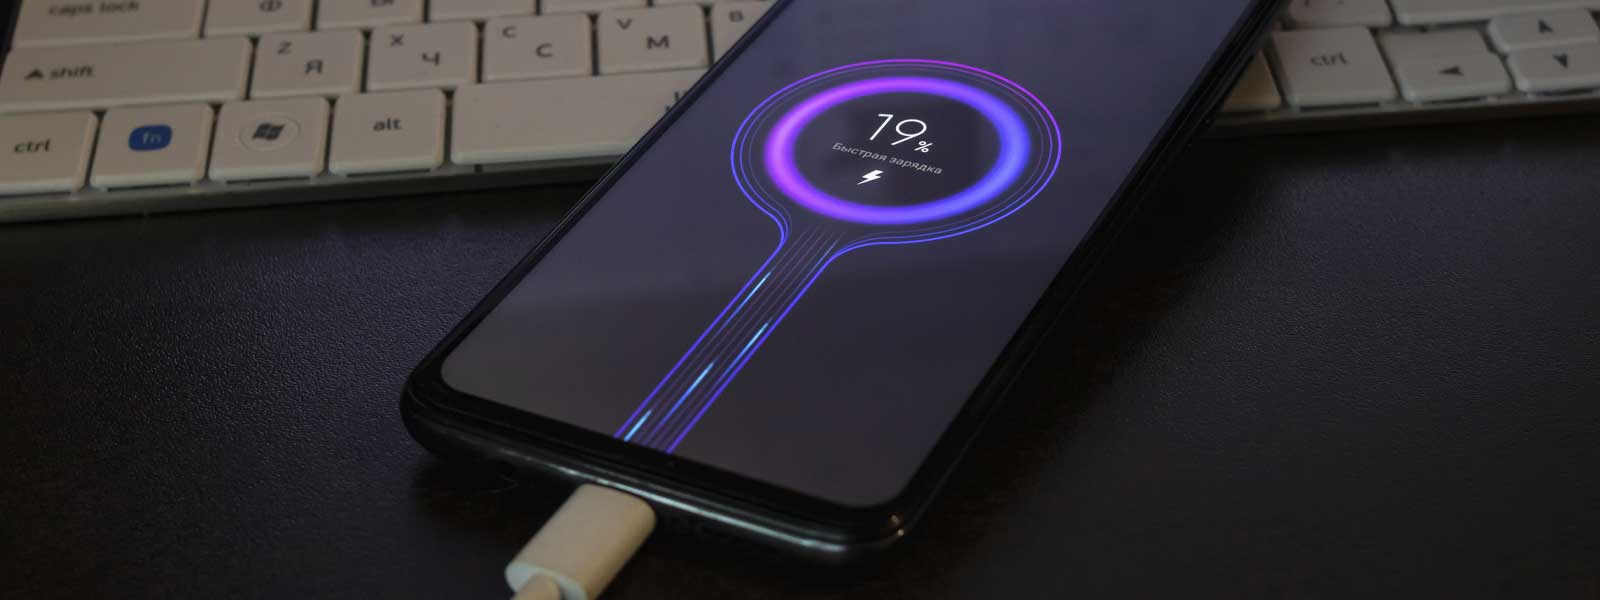 phone with fast charge mode charging huawei oppo xiaomi